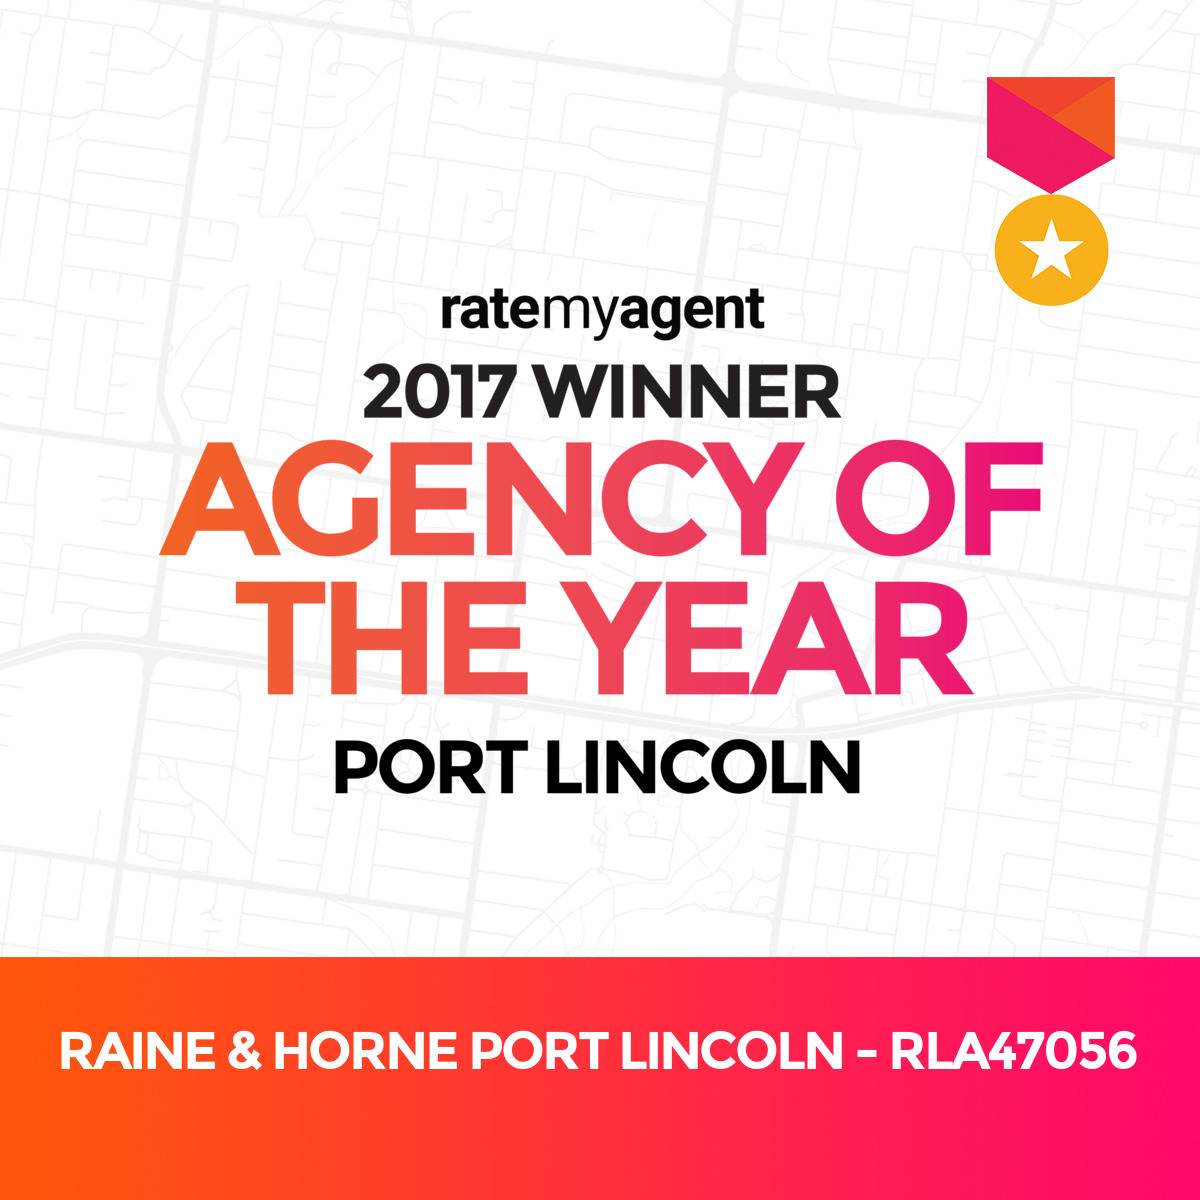 RateMyAgent Agency of the year 2017 Port Lincoln